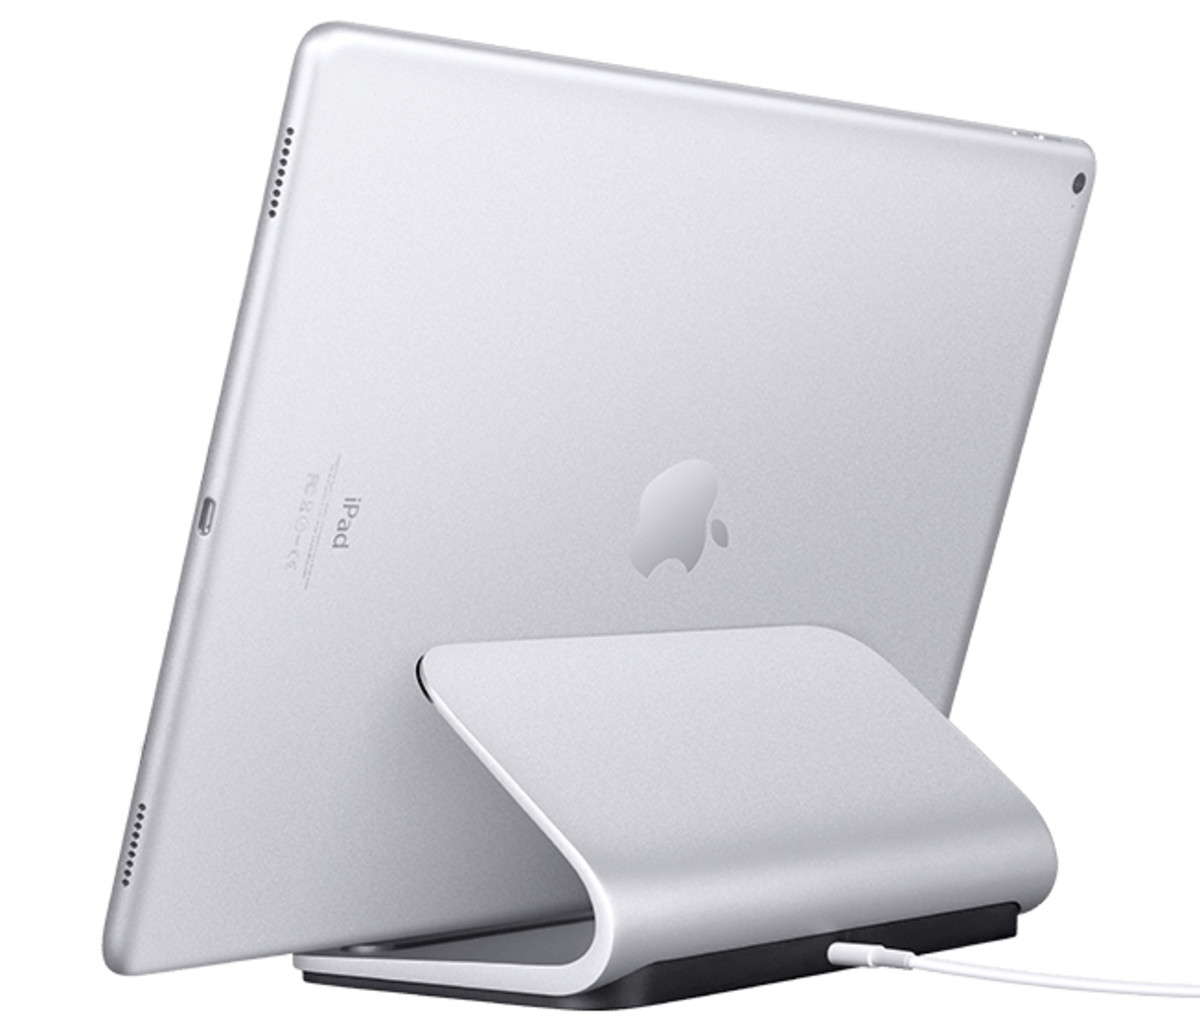 Logitech Brings Wireless Charging To The Ipad Pro Acquire